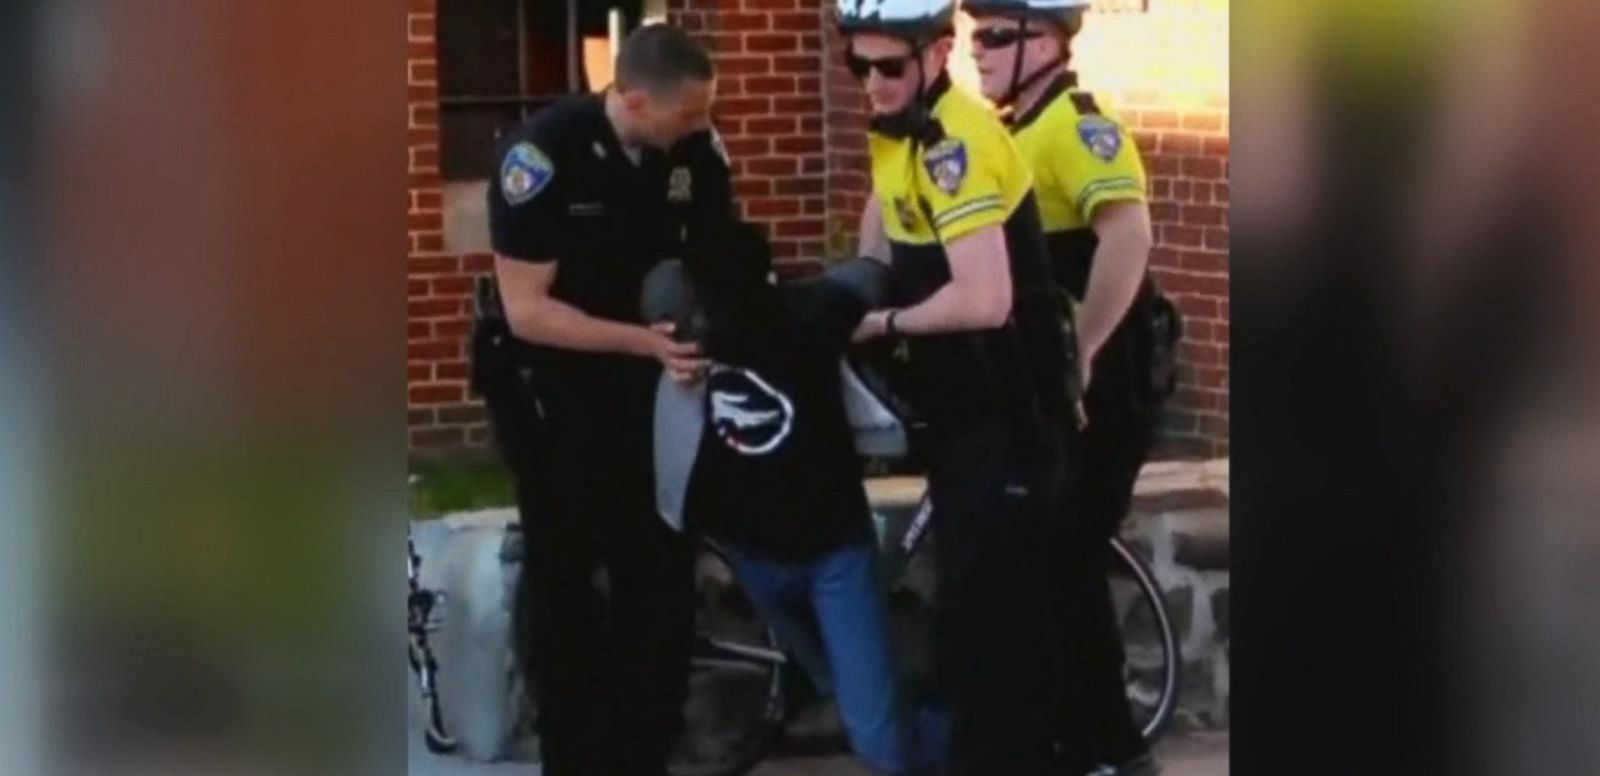 VIDEO: Prosecutors Drop All Charges Against Remaining Officers in the Death of Freddie Gray